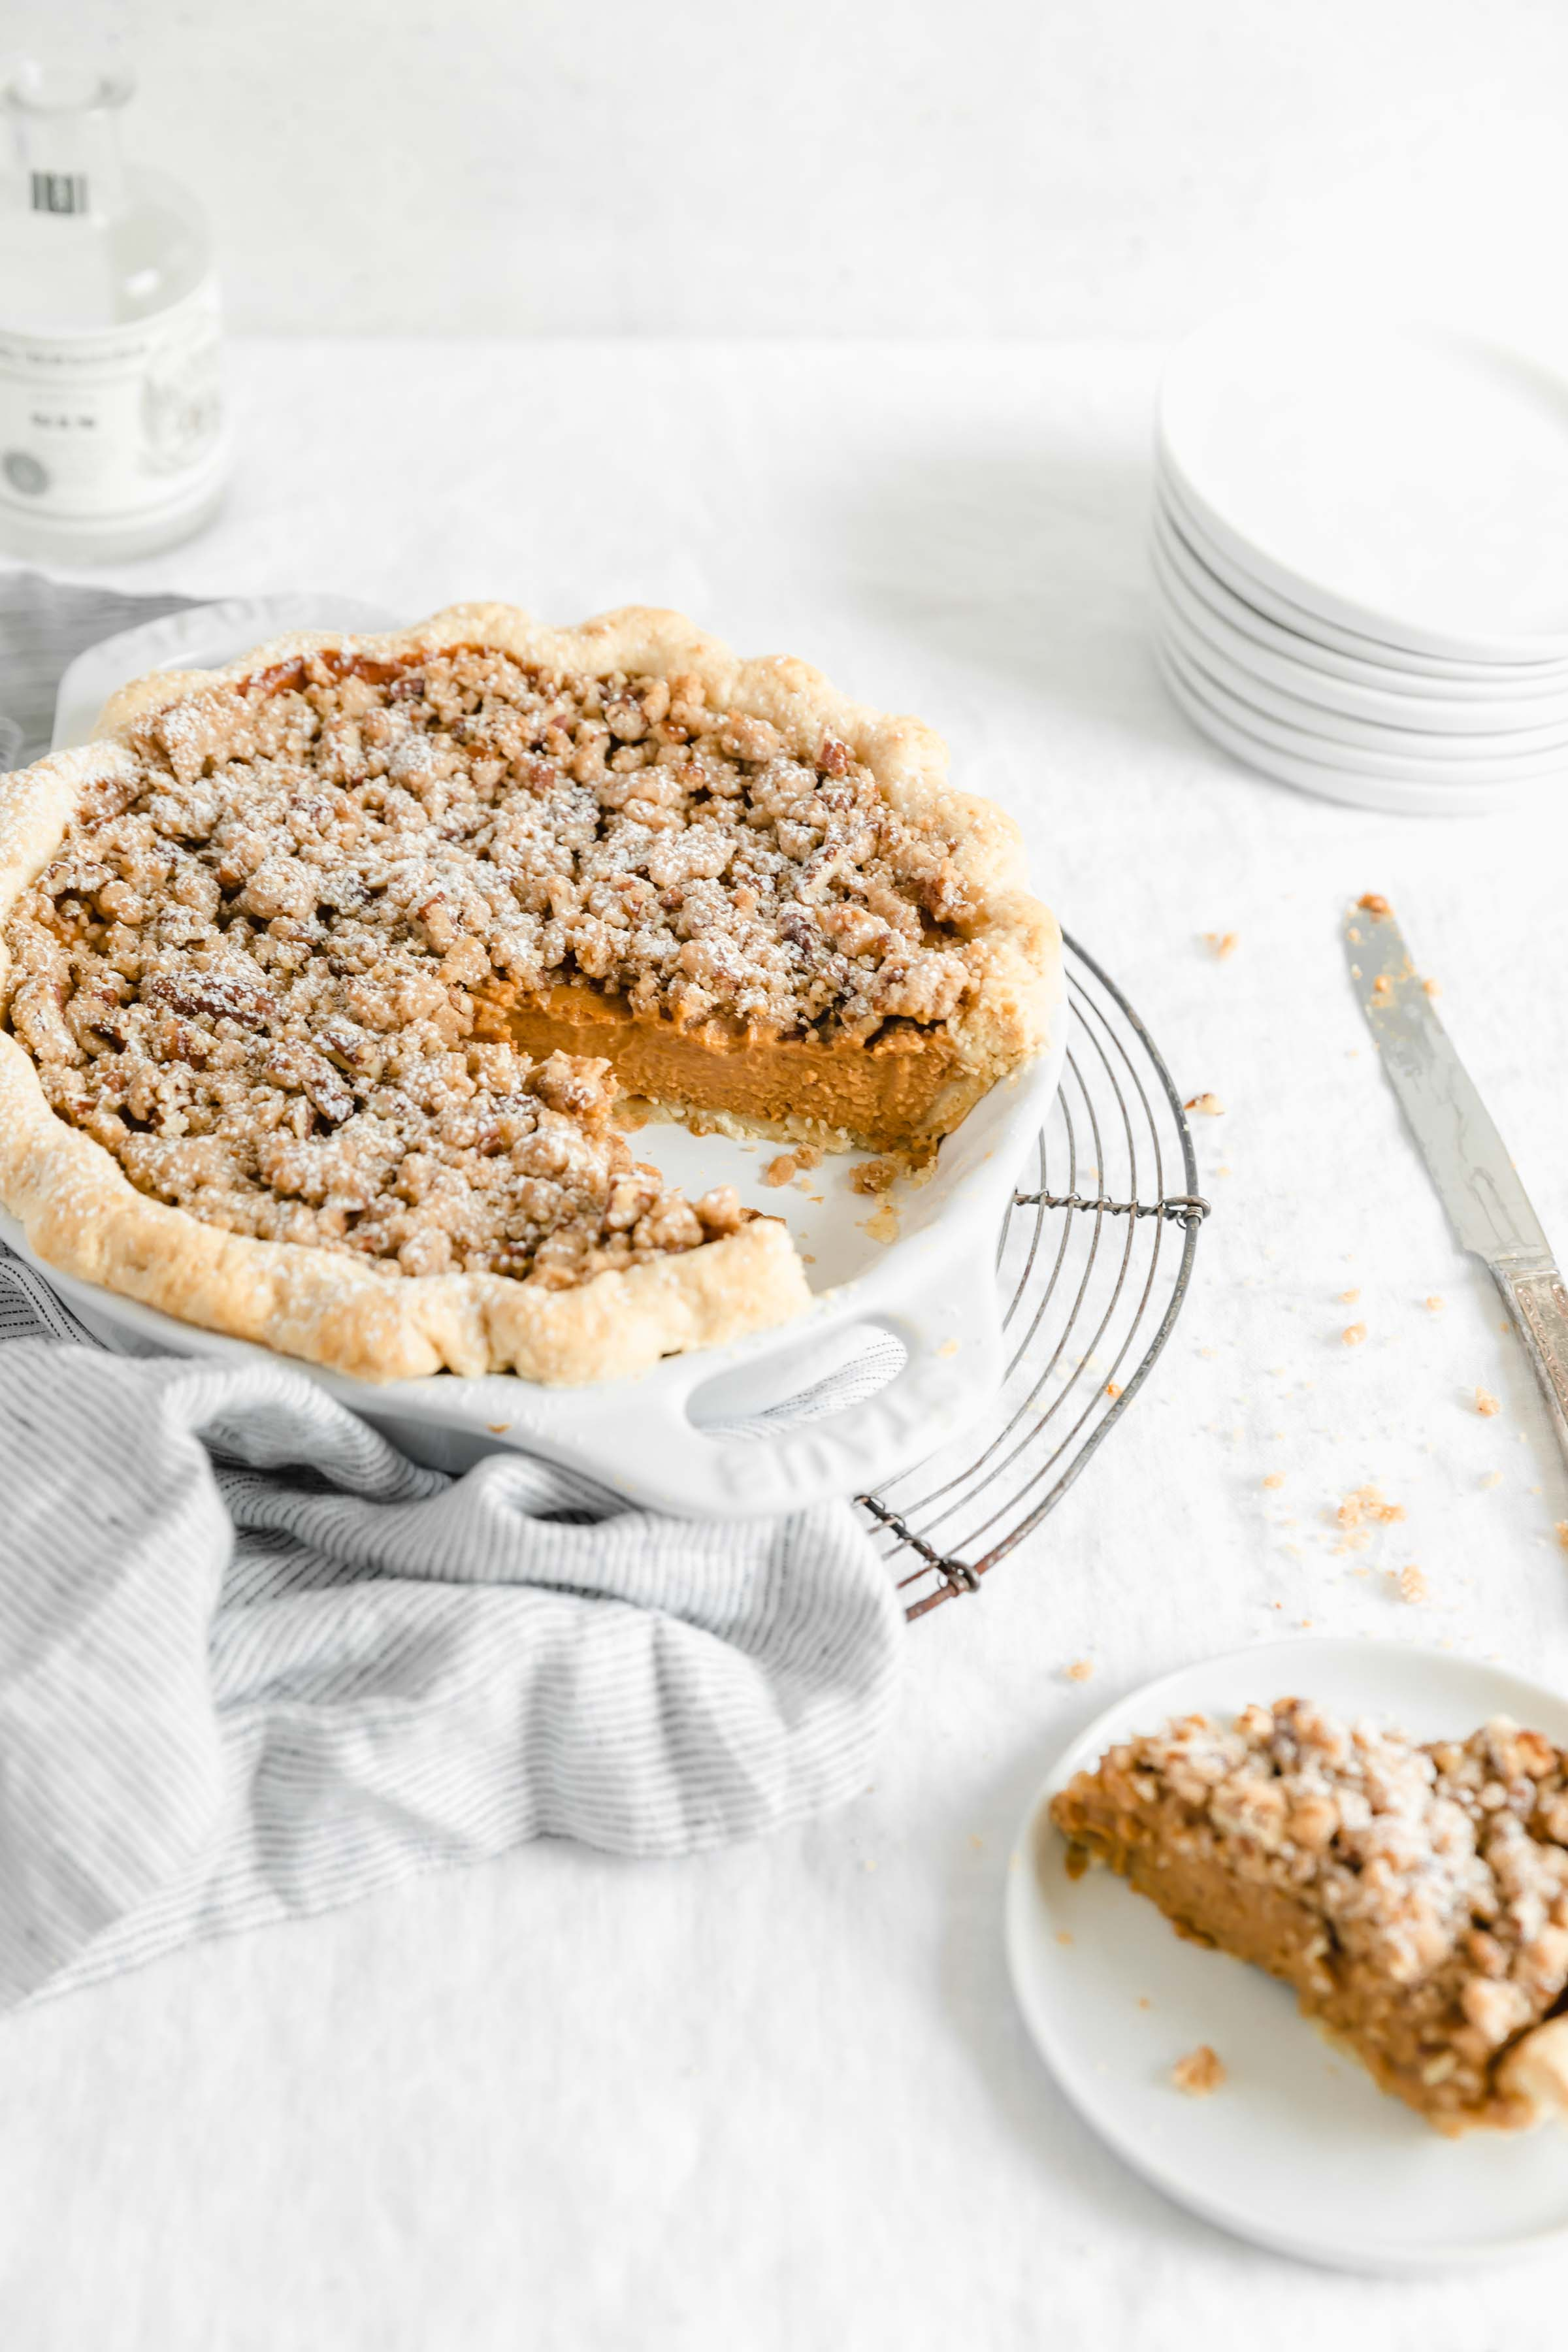 Silky smooth sweet potato crumble pie with a decadent streusel topping